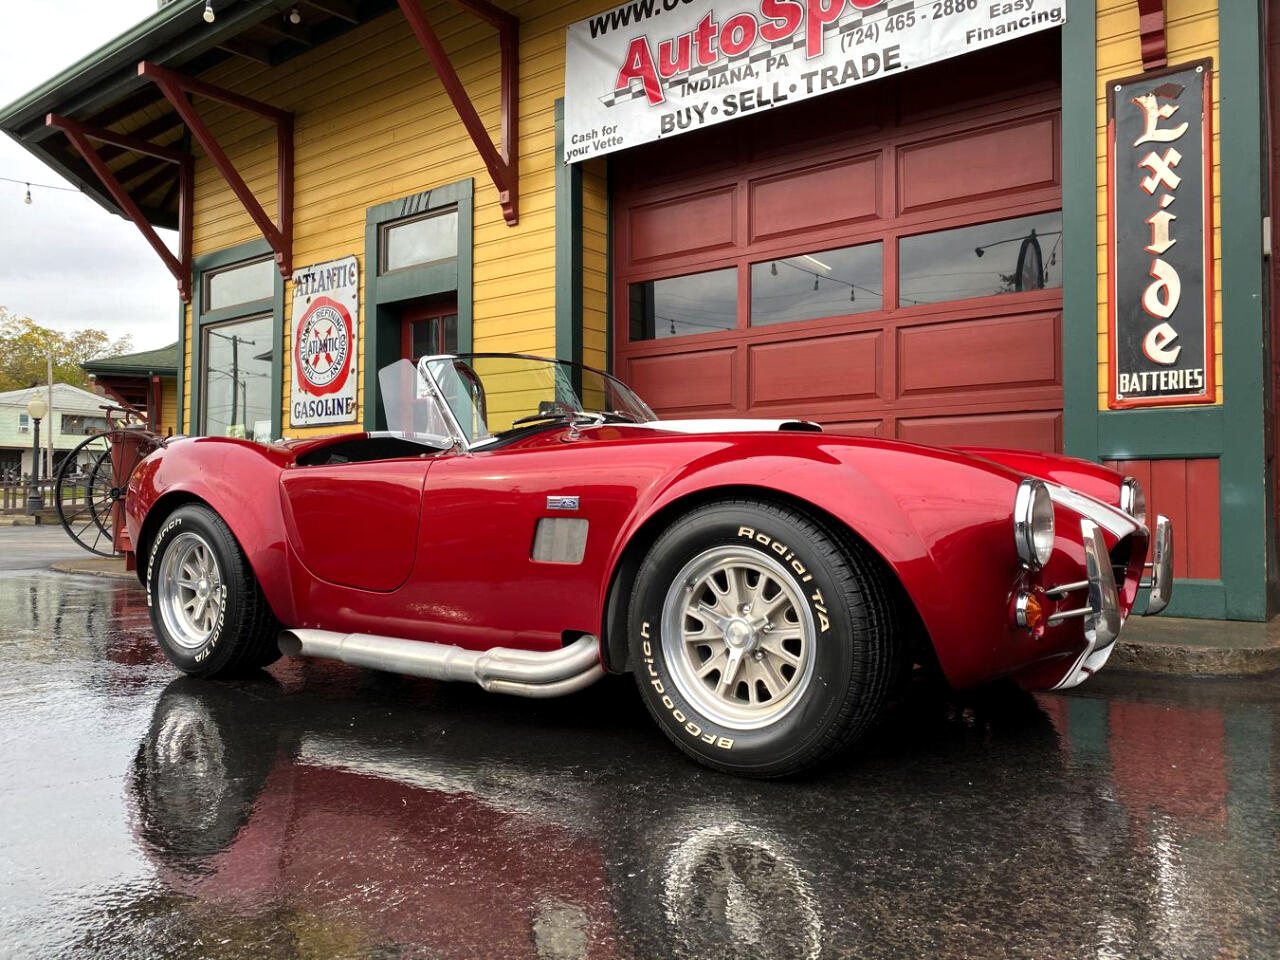 1965 Shelby Cobra Factory 5 Shelby Cobra 5.0 Pro-Charged V8